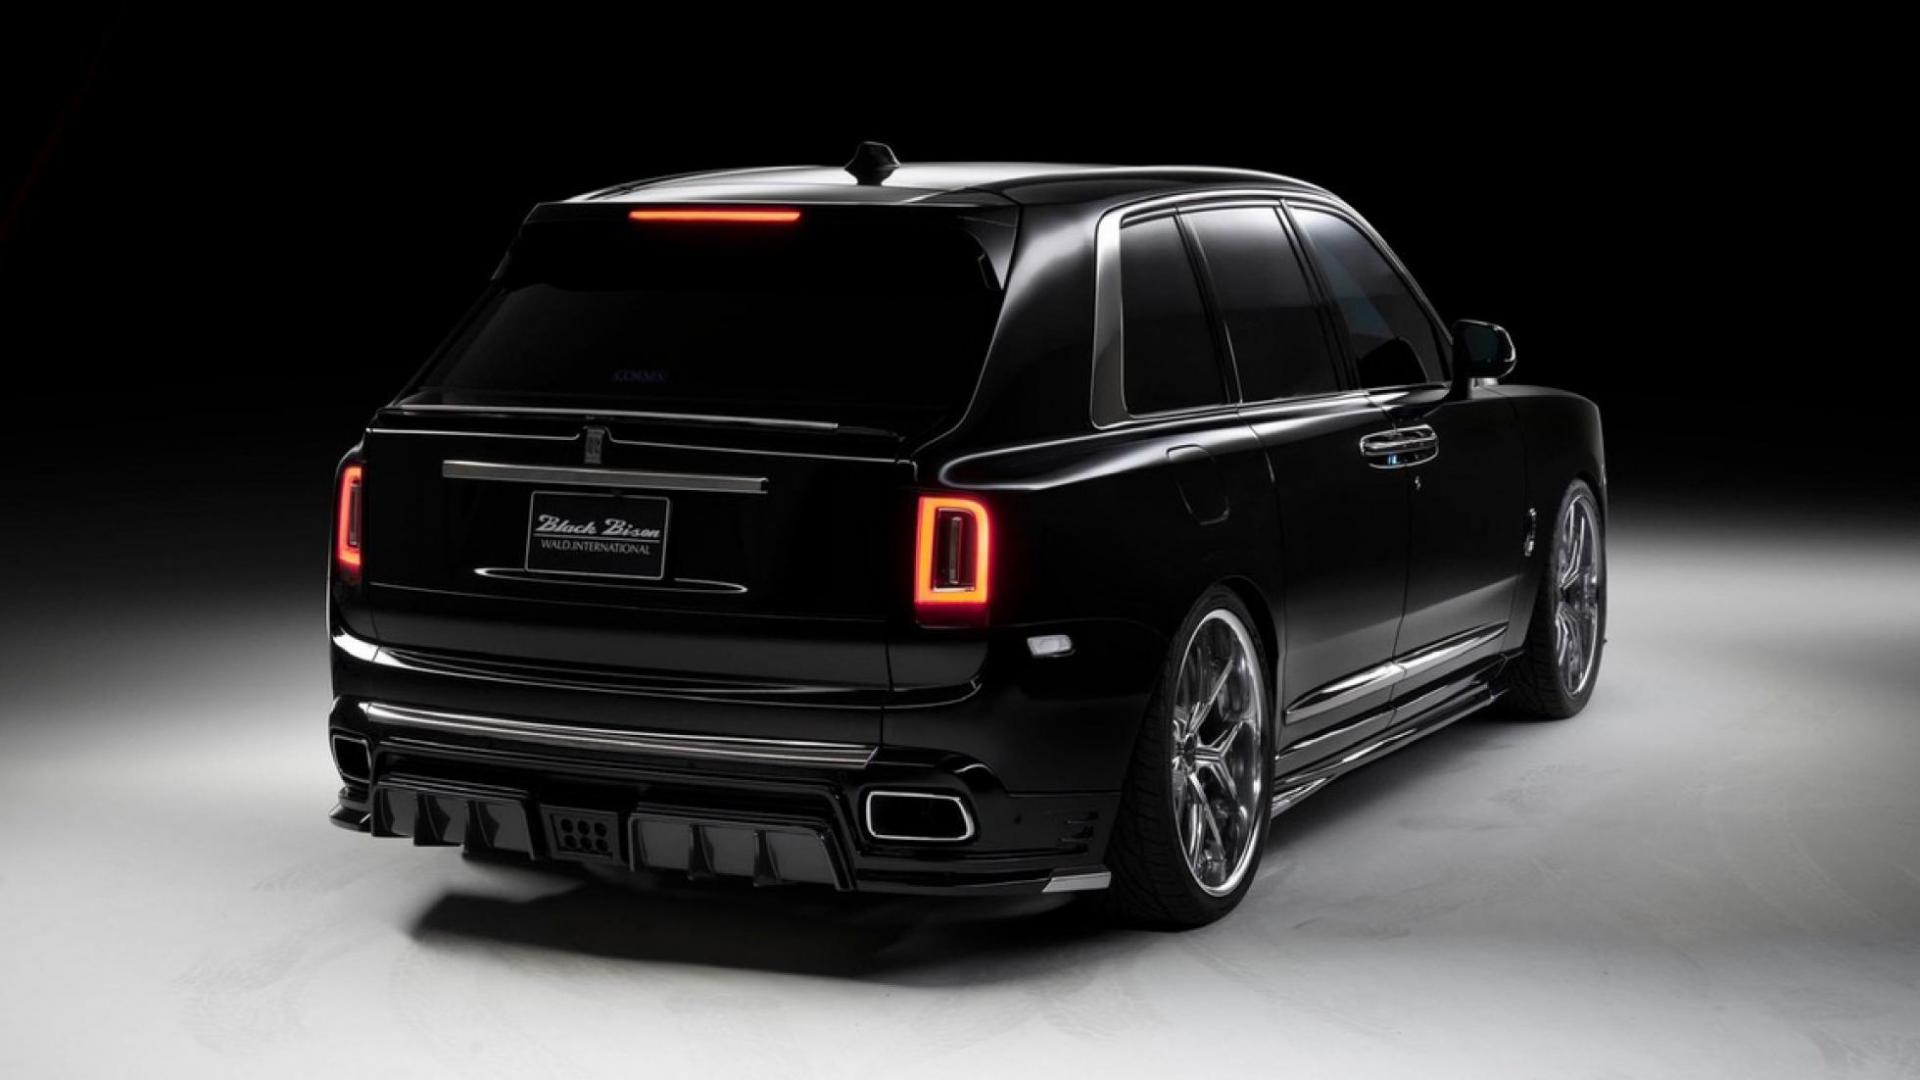 Rolls-Royce Cullinan van Wald International